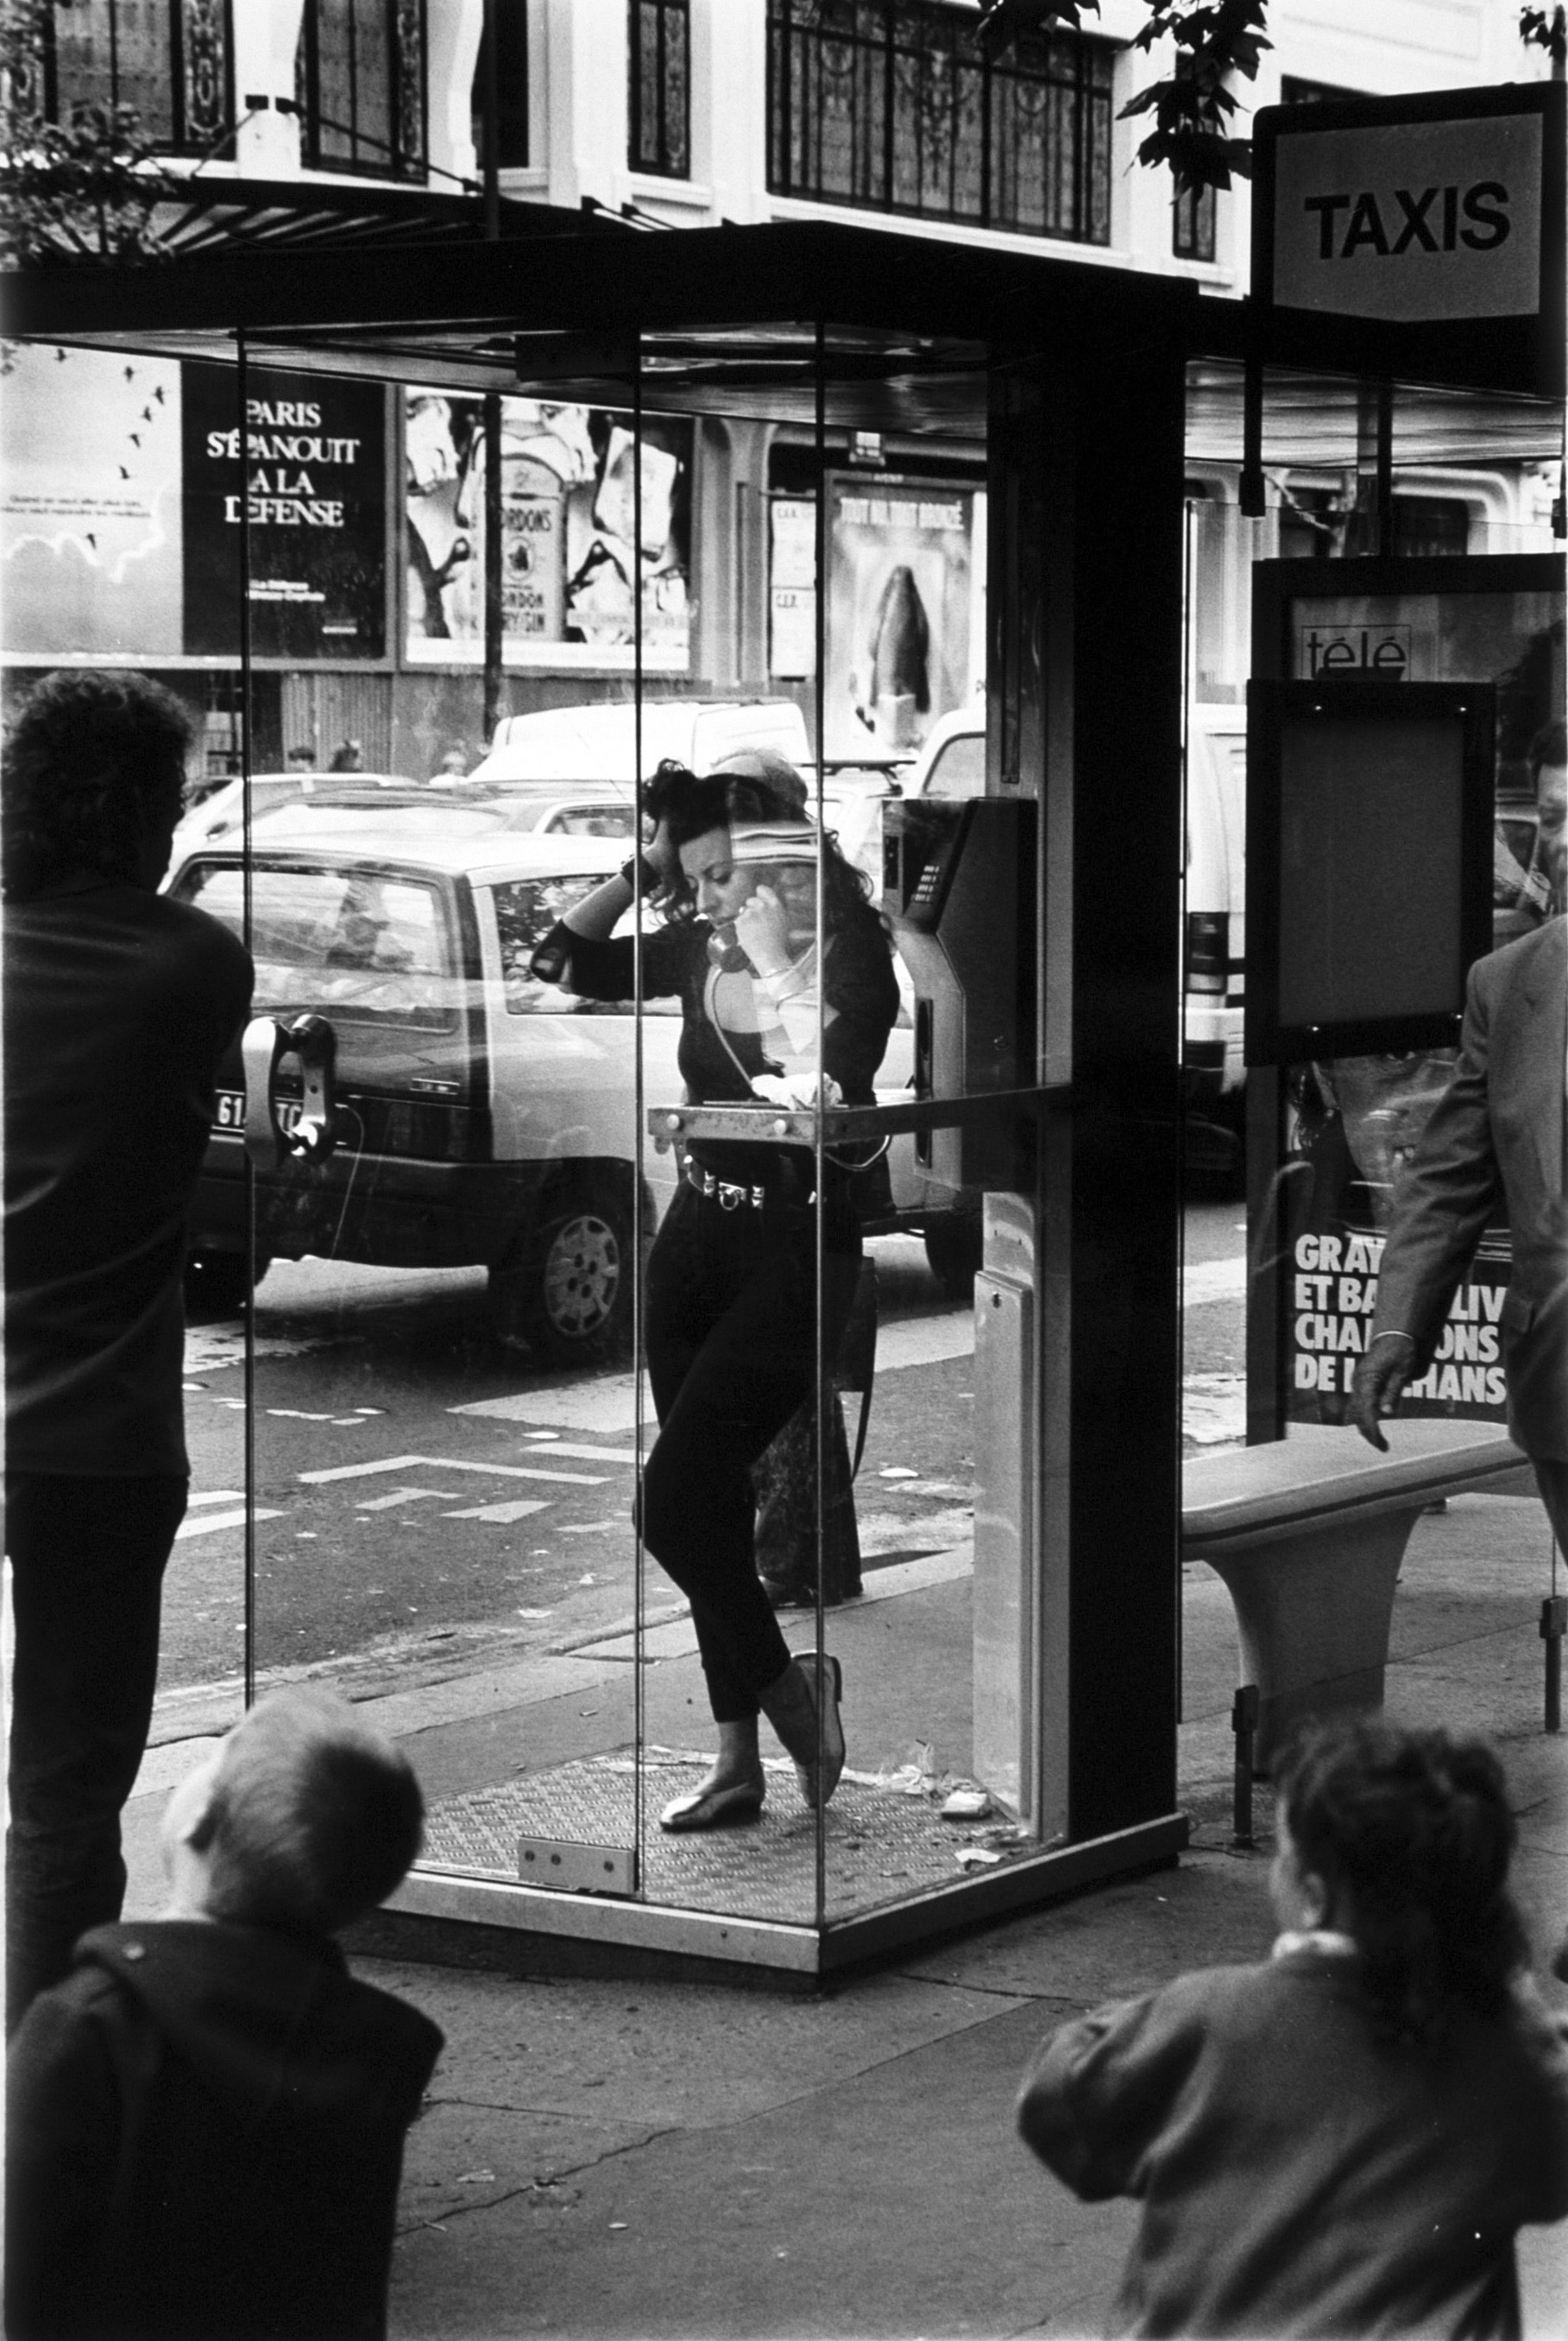 Paris phone booth